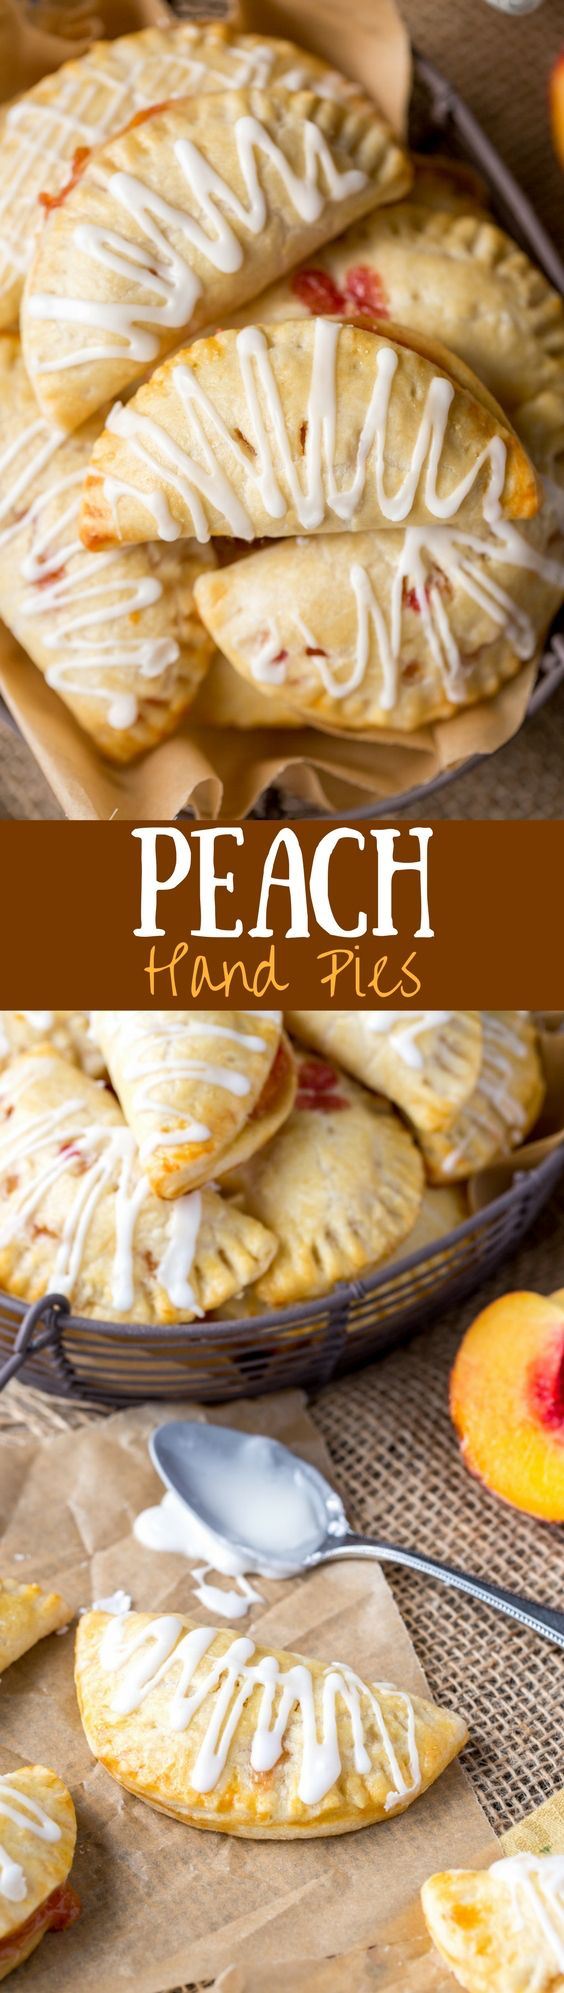 Peach Hand Pies - soft and sweet and loaded with juicy peaches ...